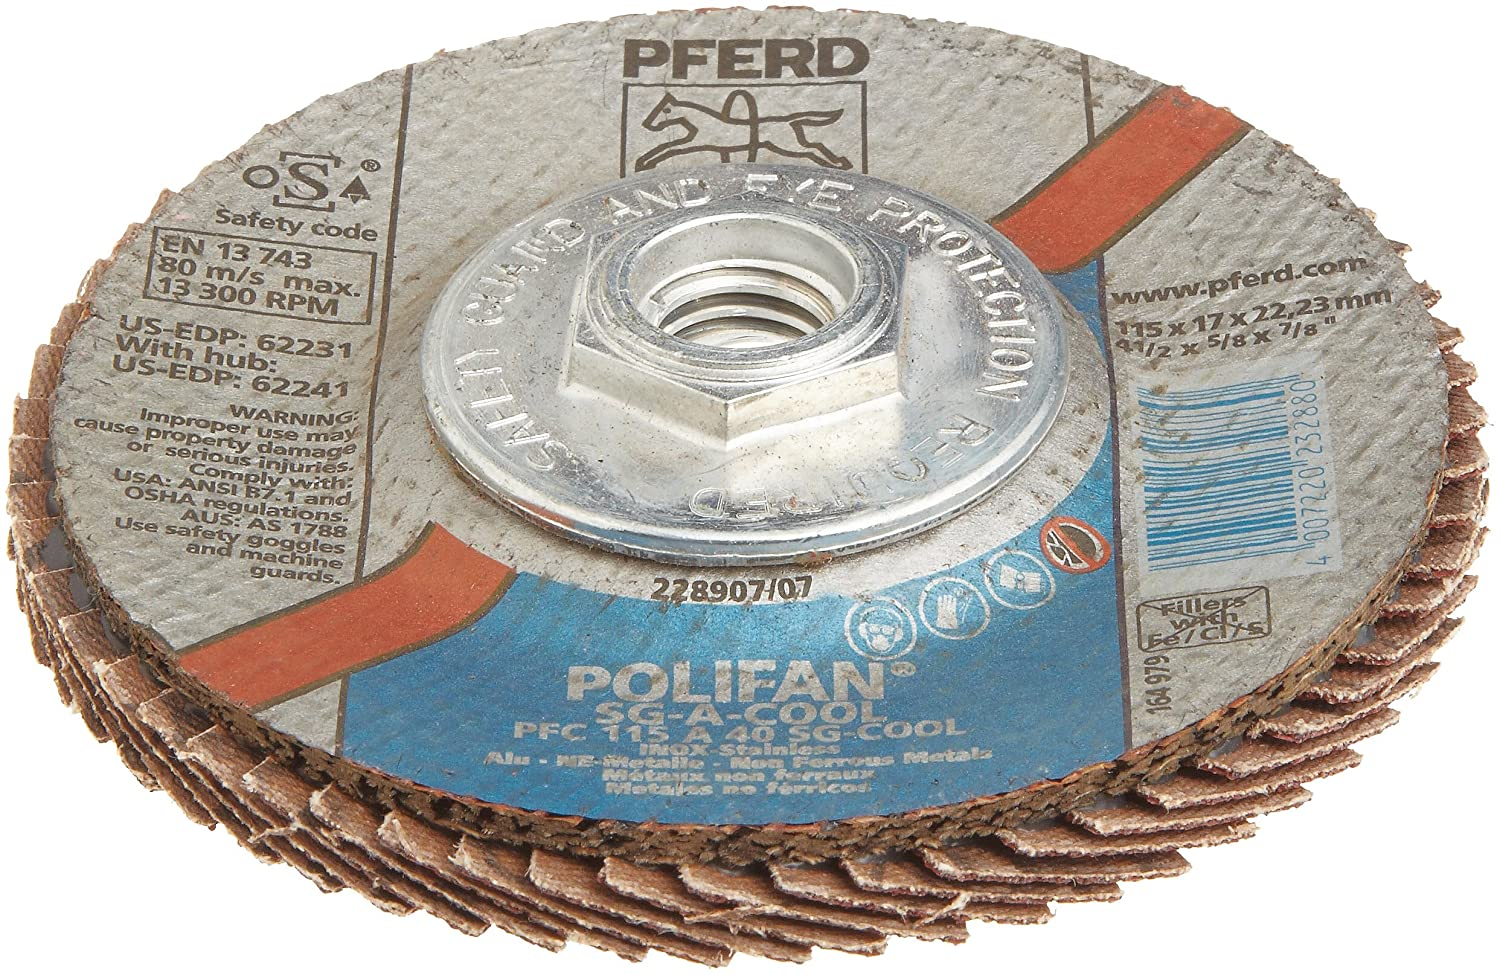 4-1//2 Dia. 4-1//2 Dia. PFERD Polifan SG CO-COOL Abrasive Flap Disc Type 29 Phenolic Resin Backing Aluminum Oxide Pack of 1 40 Grit Threaded Hole